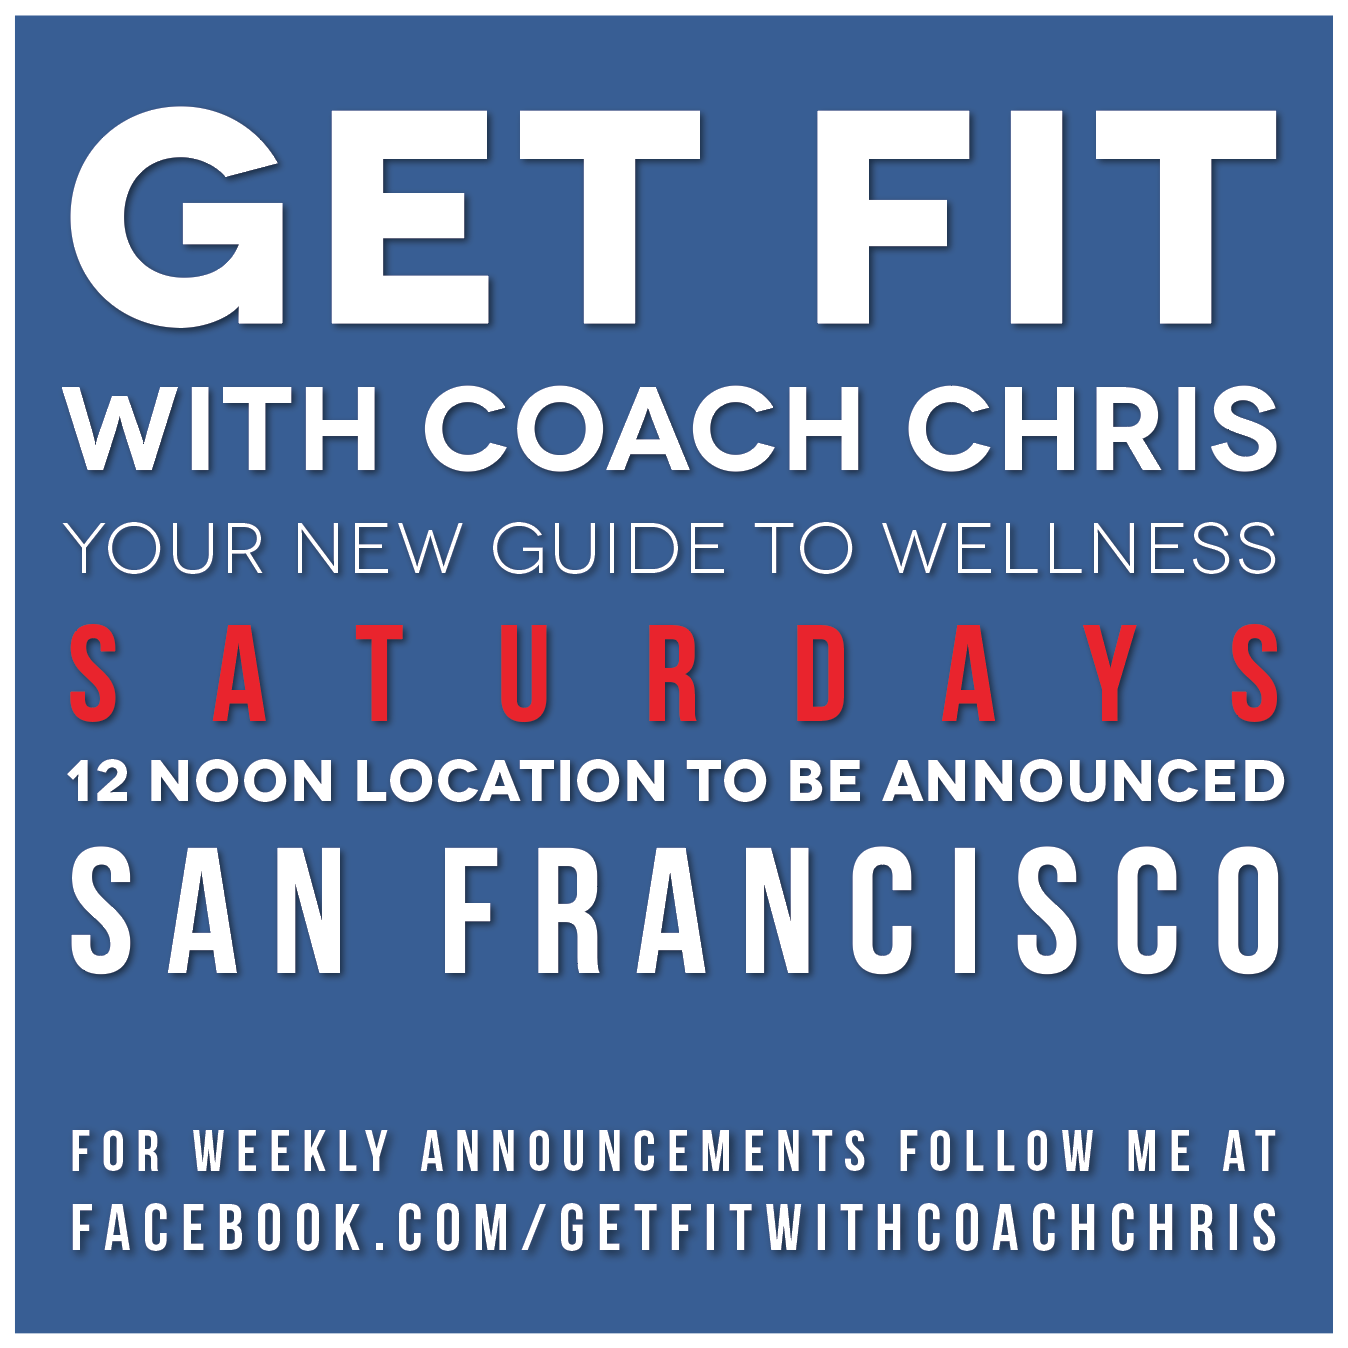 Next class will be announced on my  facebook  page - classes begin at 12 noon - Be sure to RSVP!